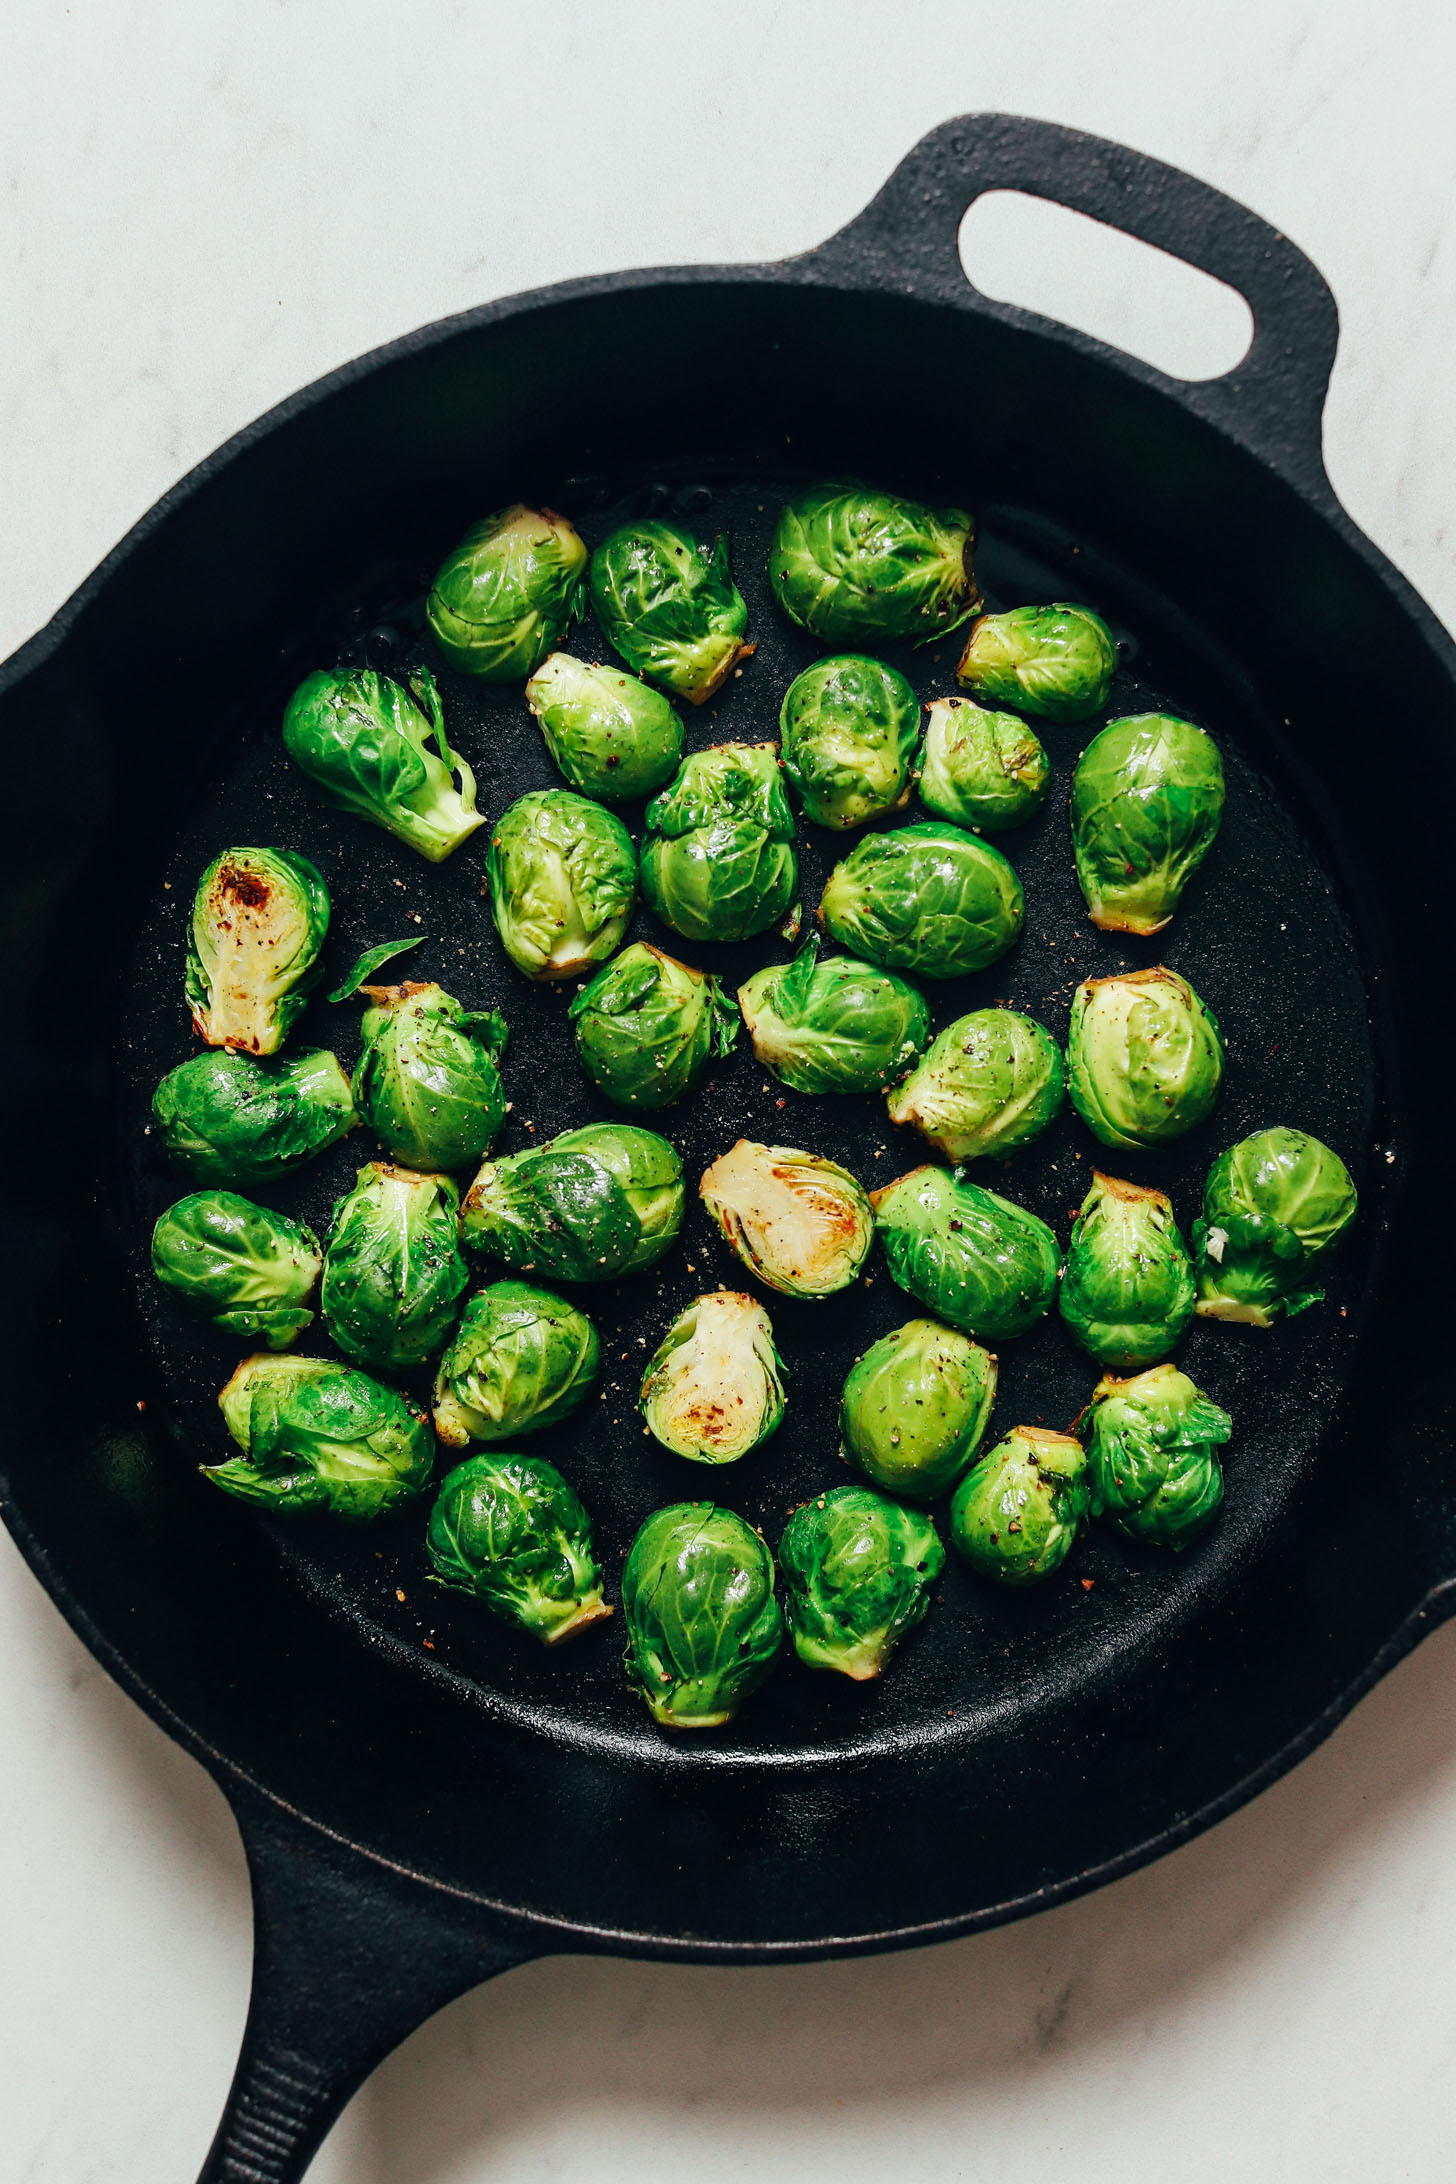 Sear the Brussels sprouts in a cast iron pan